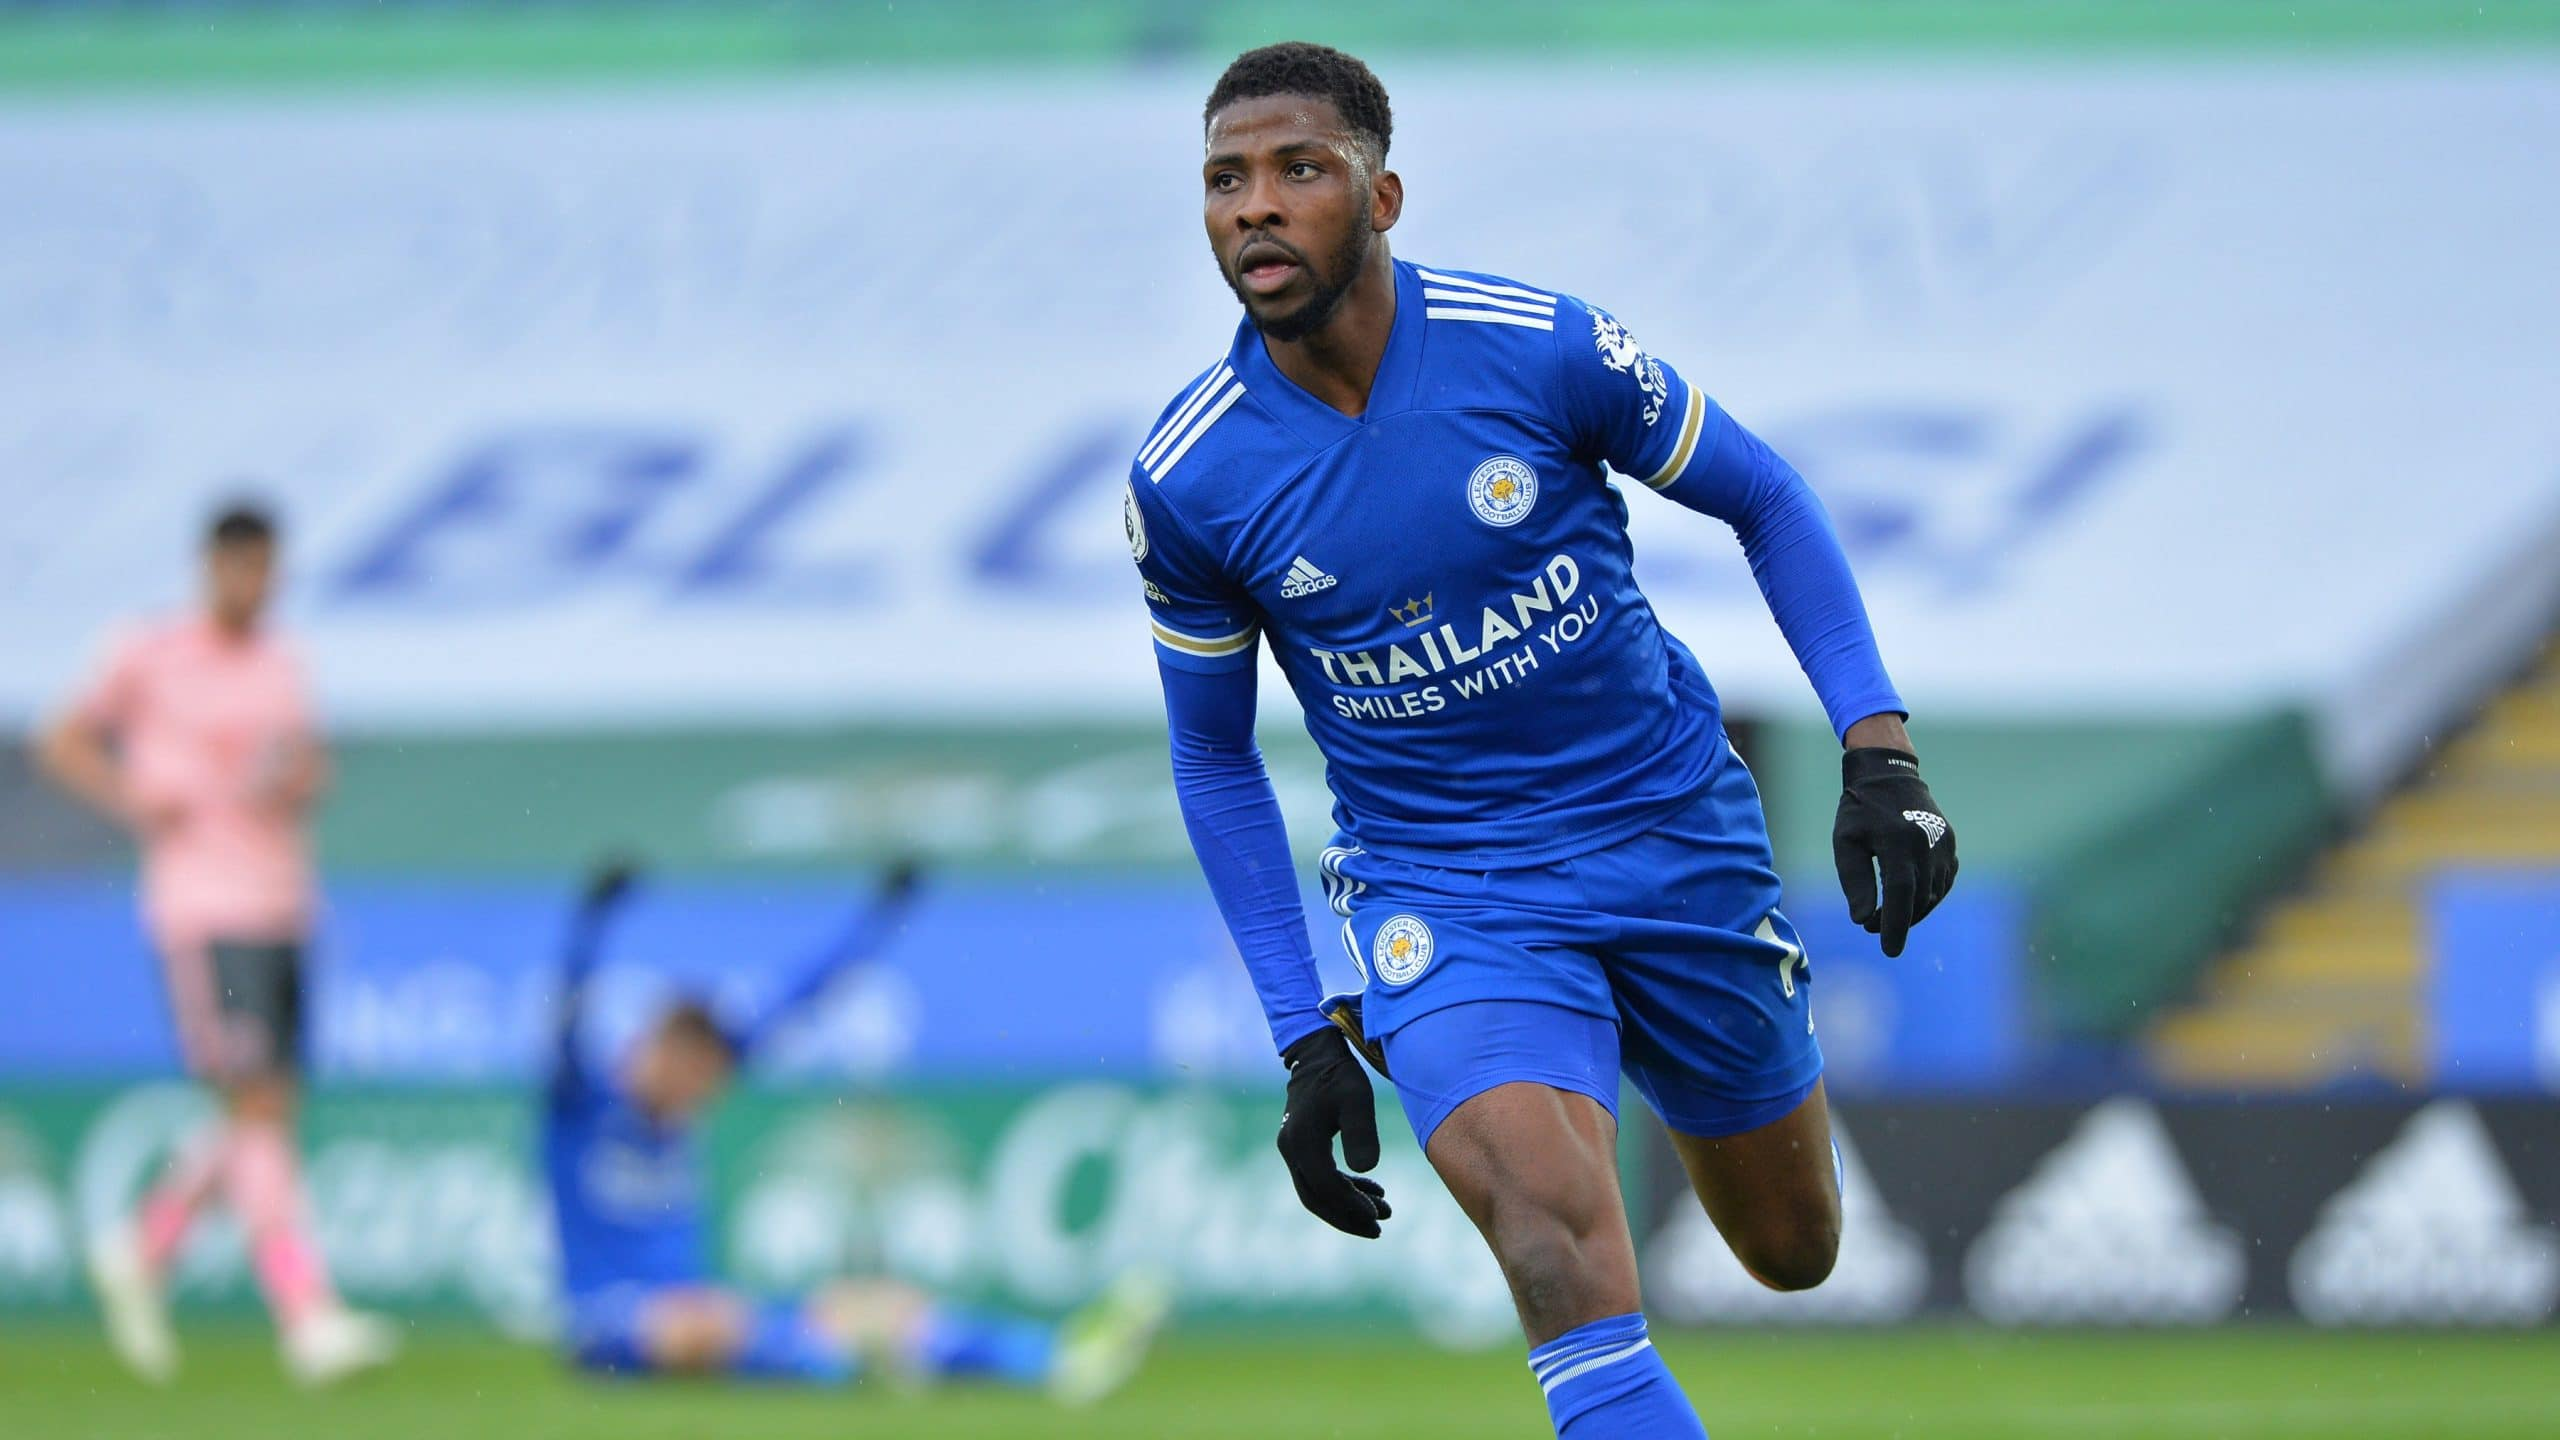 Sutton: Iheanacho Can Be Leicester City's Key  Star